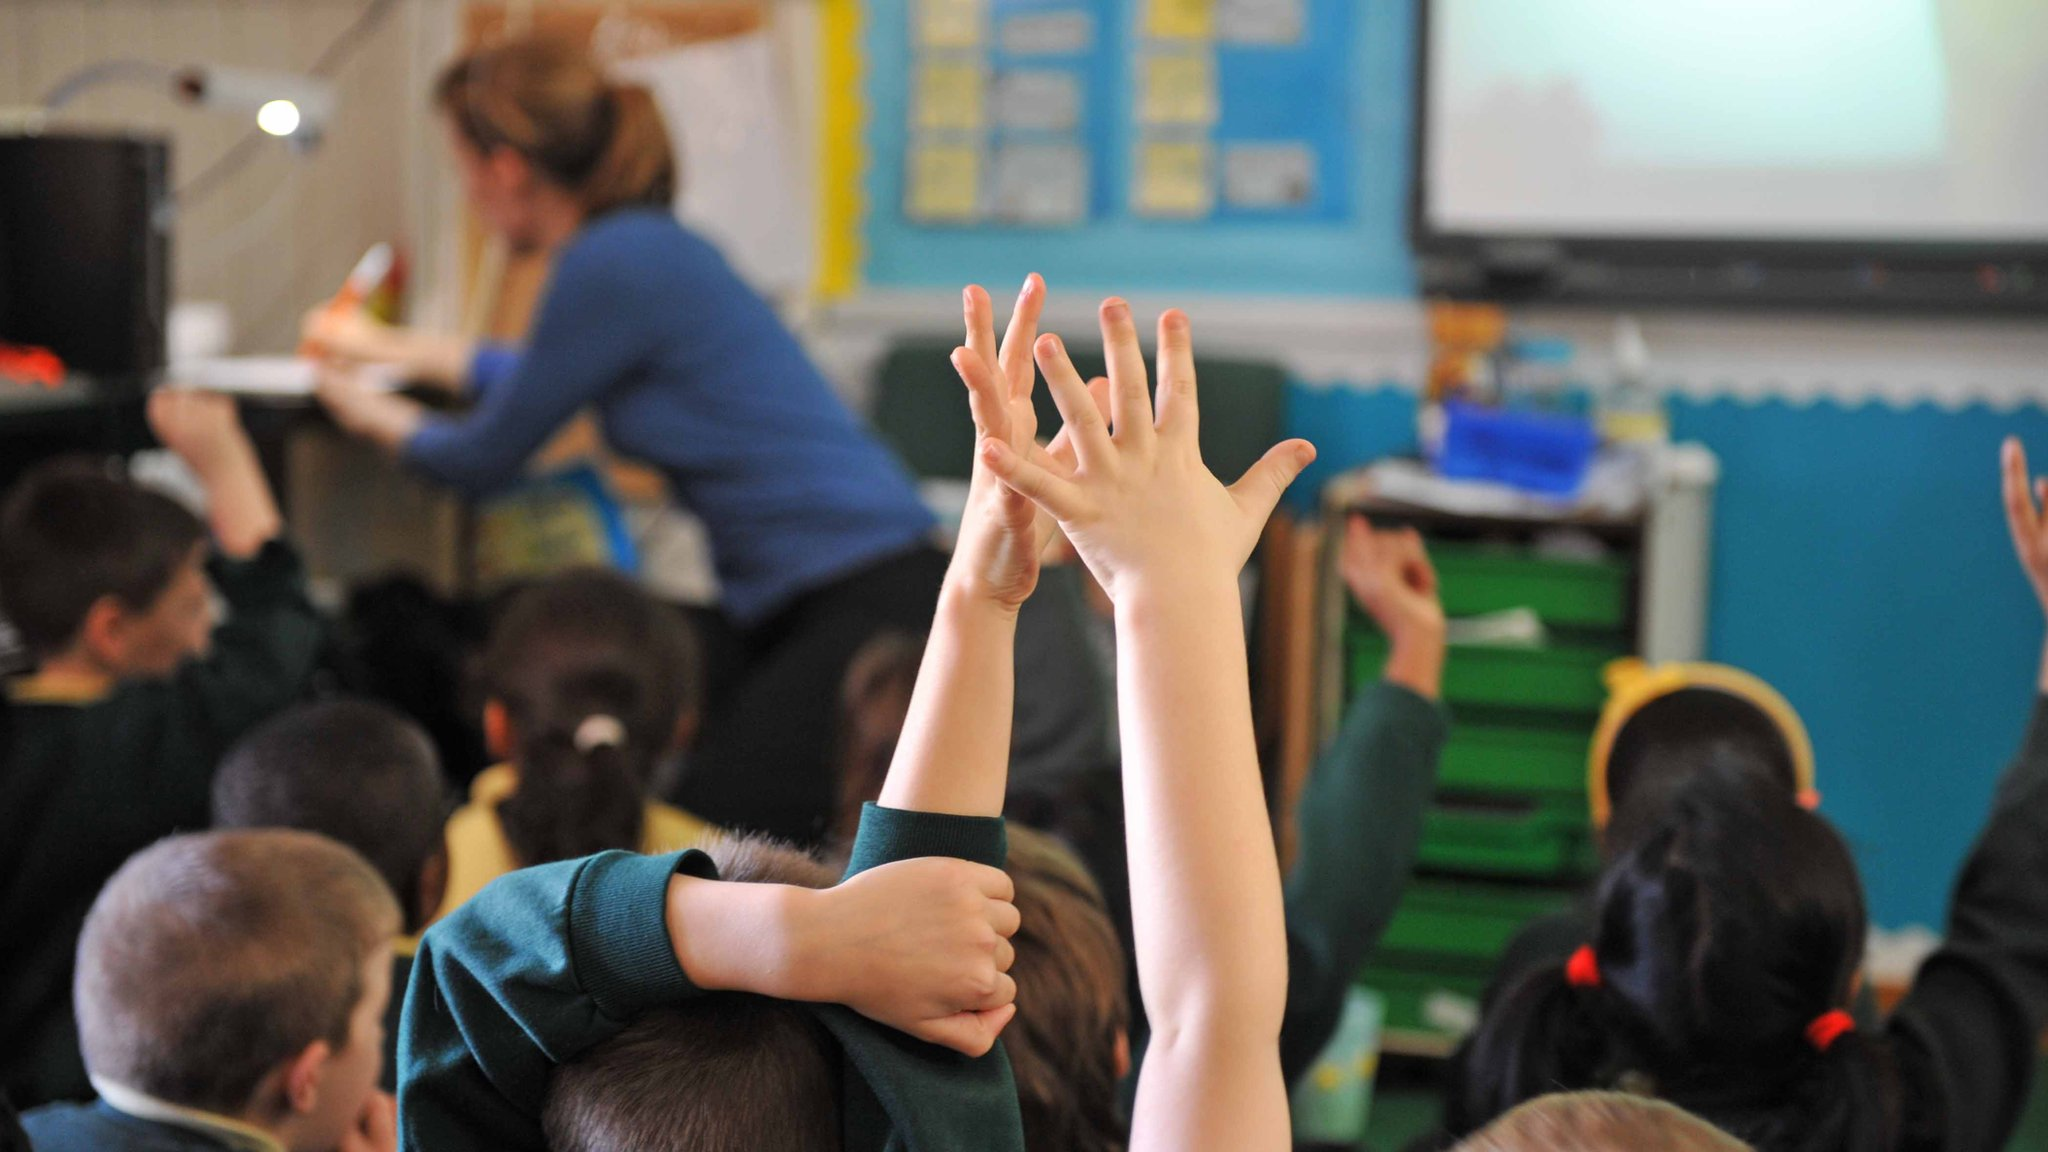 Gloucestershire heads fear 'catastrophic impact' over cuts plan